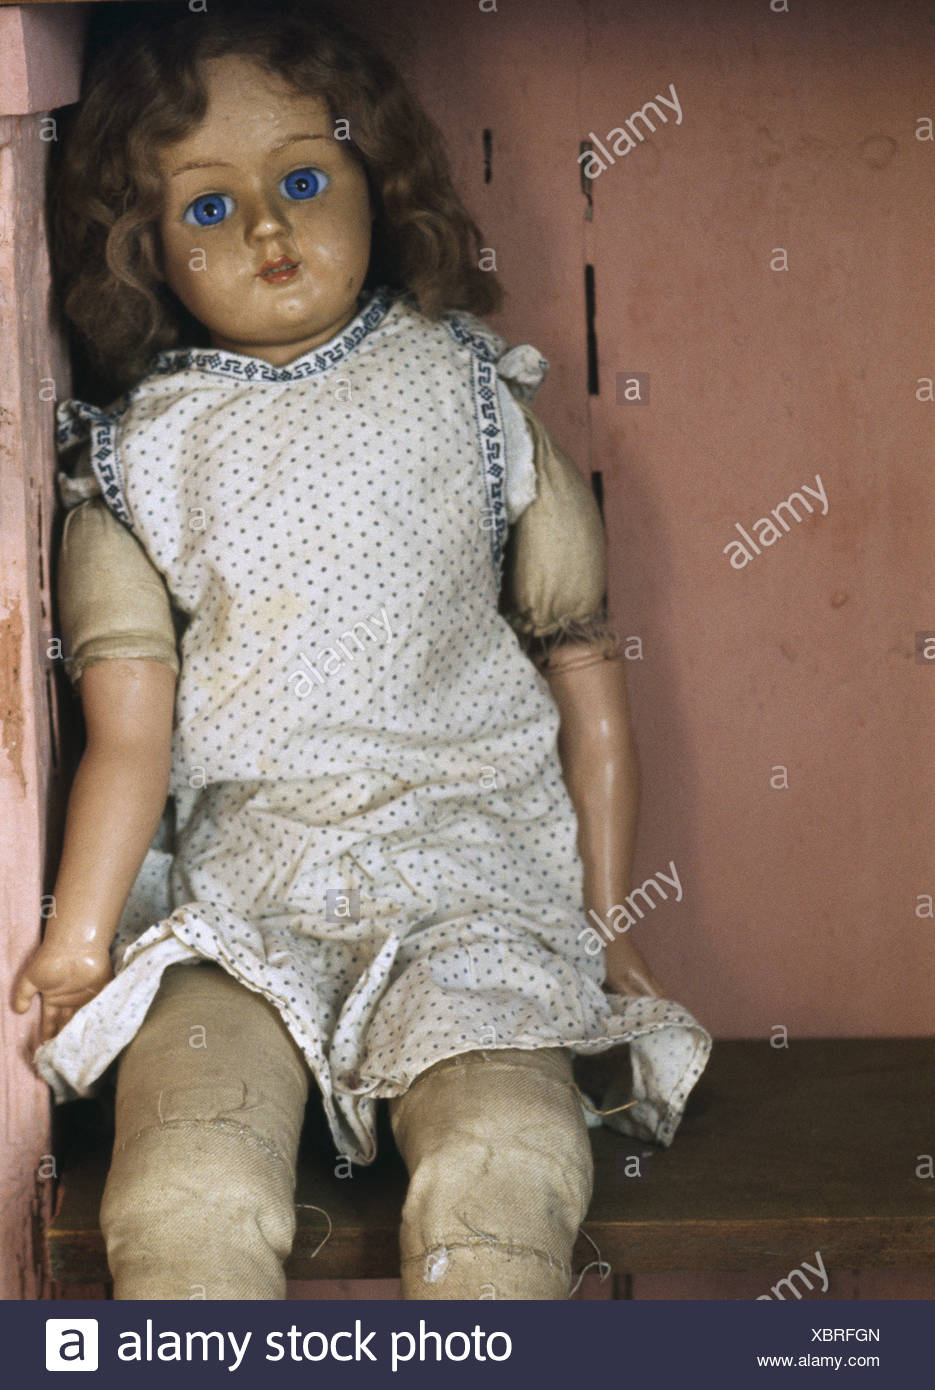 old doll sitting on a shelf stock photo 282644229 alamy